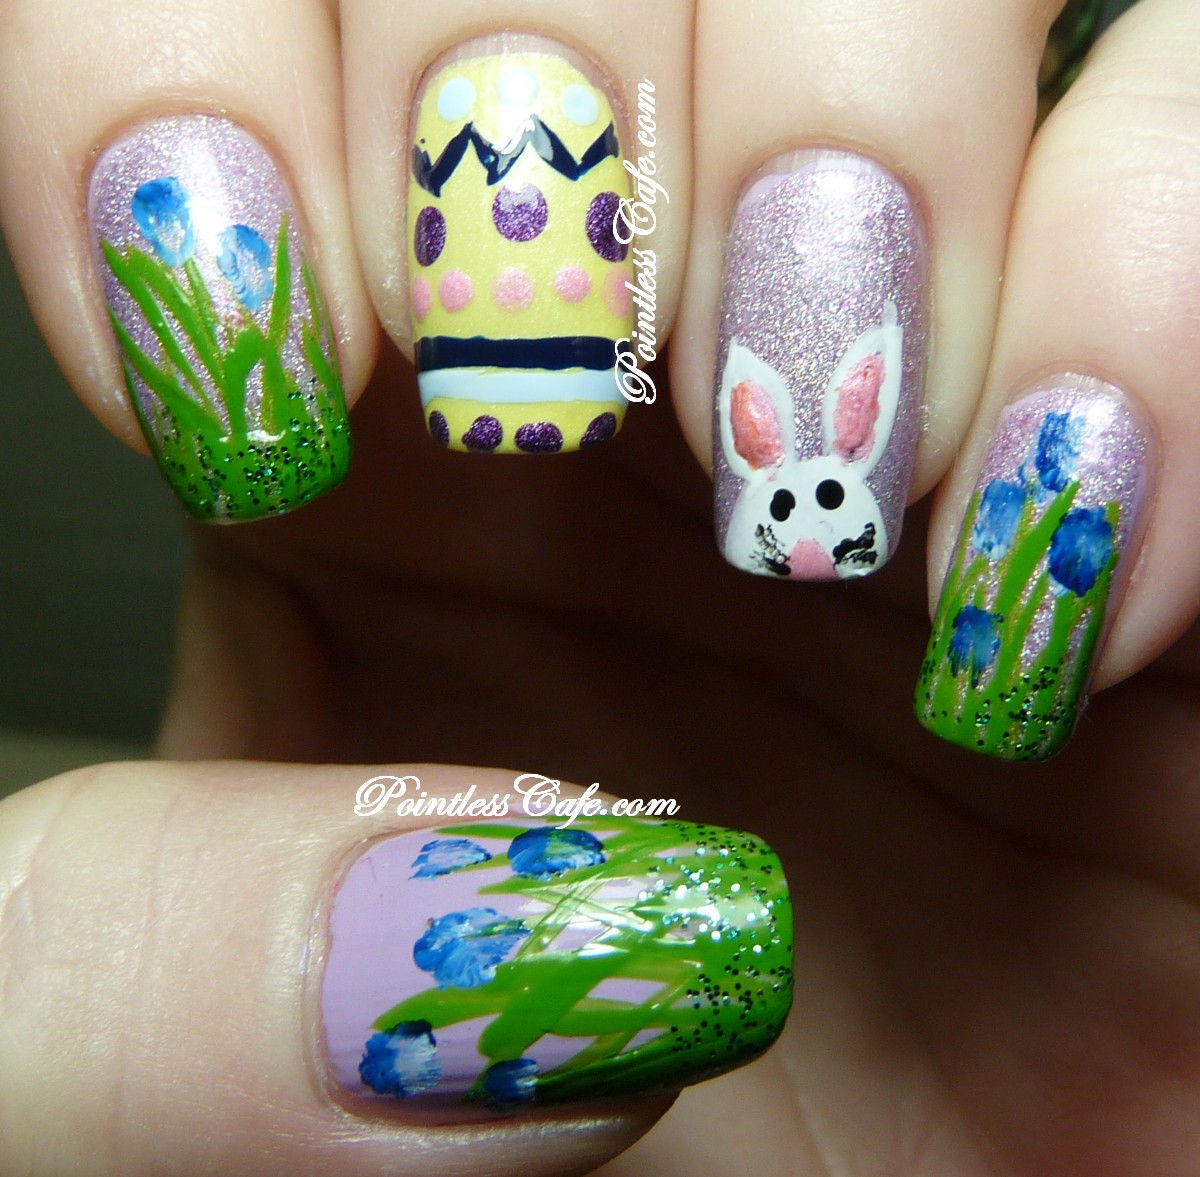 Easter Bunny Nail Art: Deranged Bunny And Runny Eggs